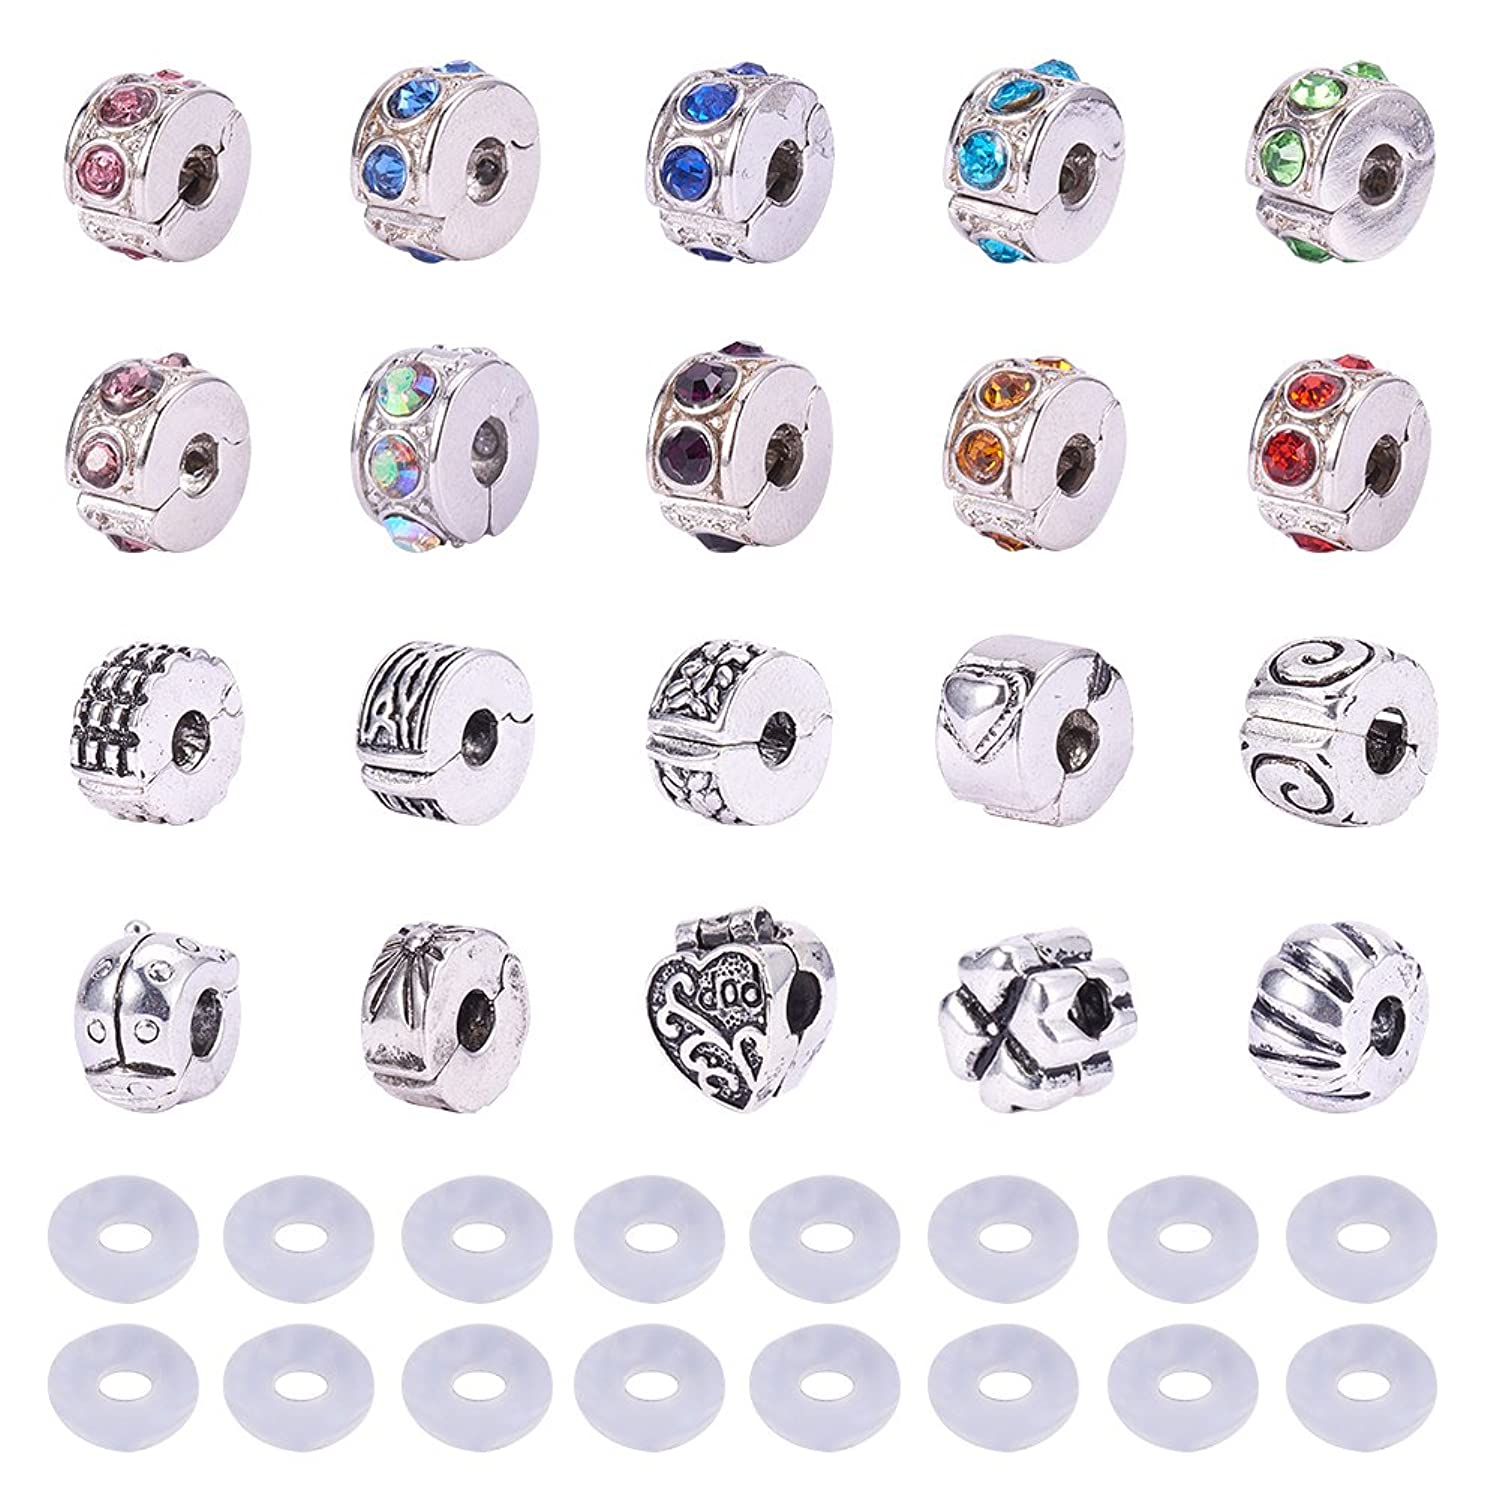 PandaHall Elite 20 Pcs Clip Lock Bead Charms with 20 Pcs Silicon Rubber Stopper O-rings Fit European Style Bracelet for Jewelry Making lbovjp4290464